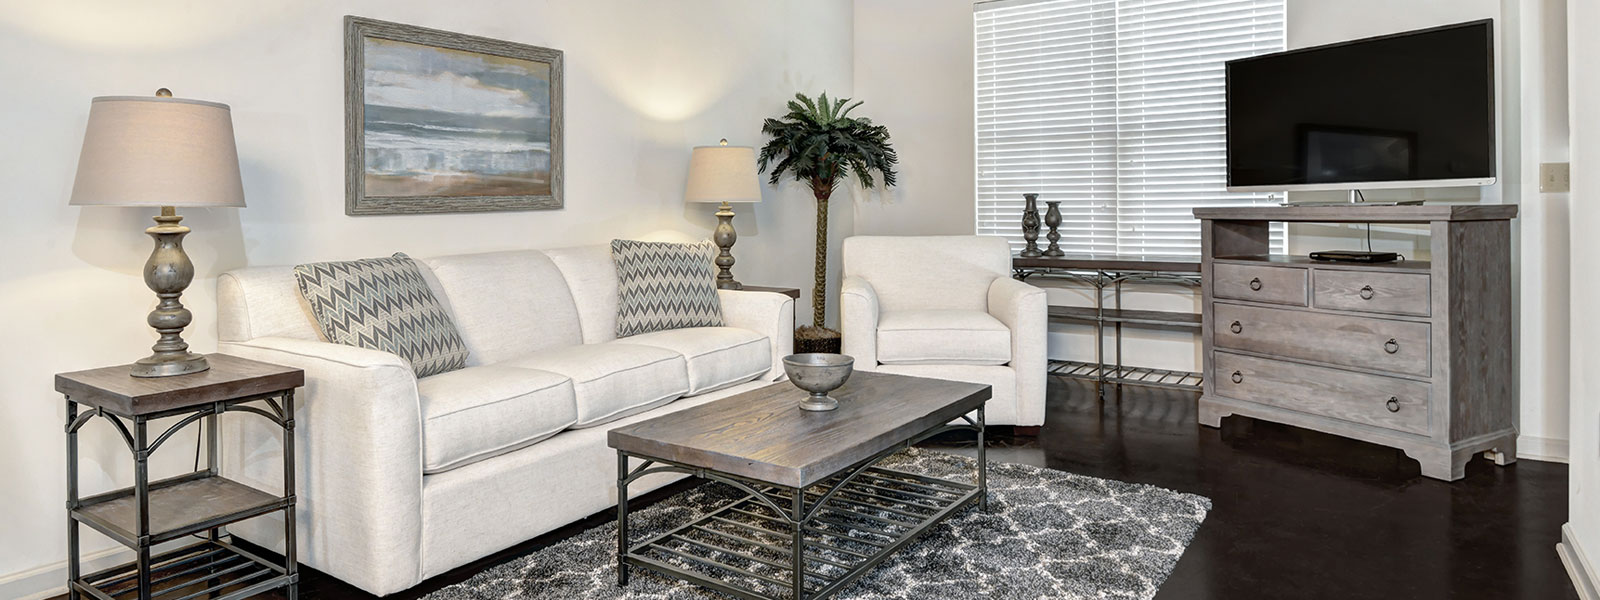 Rent Furniture in Atlanta - Apartments